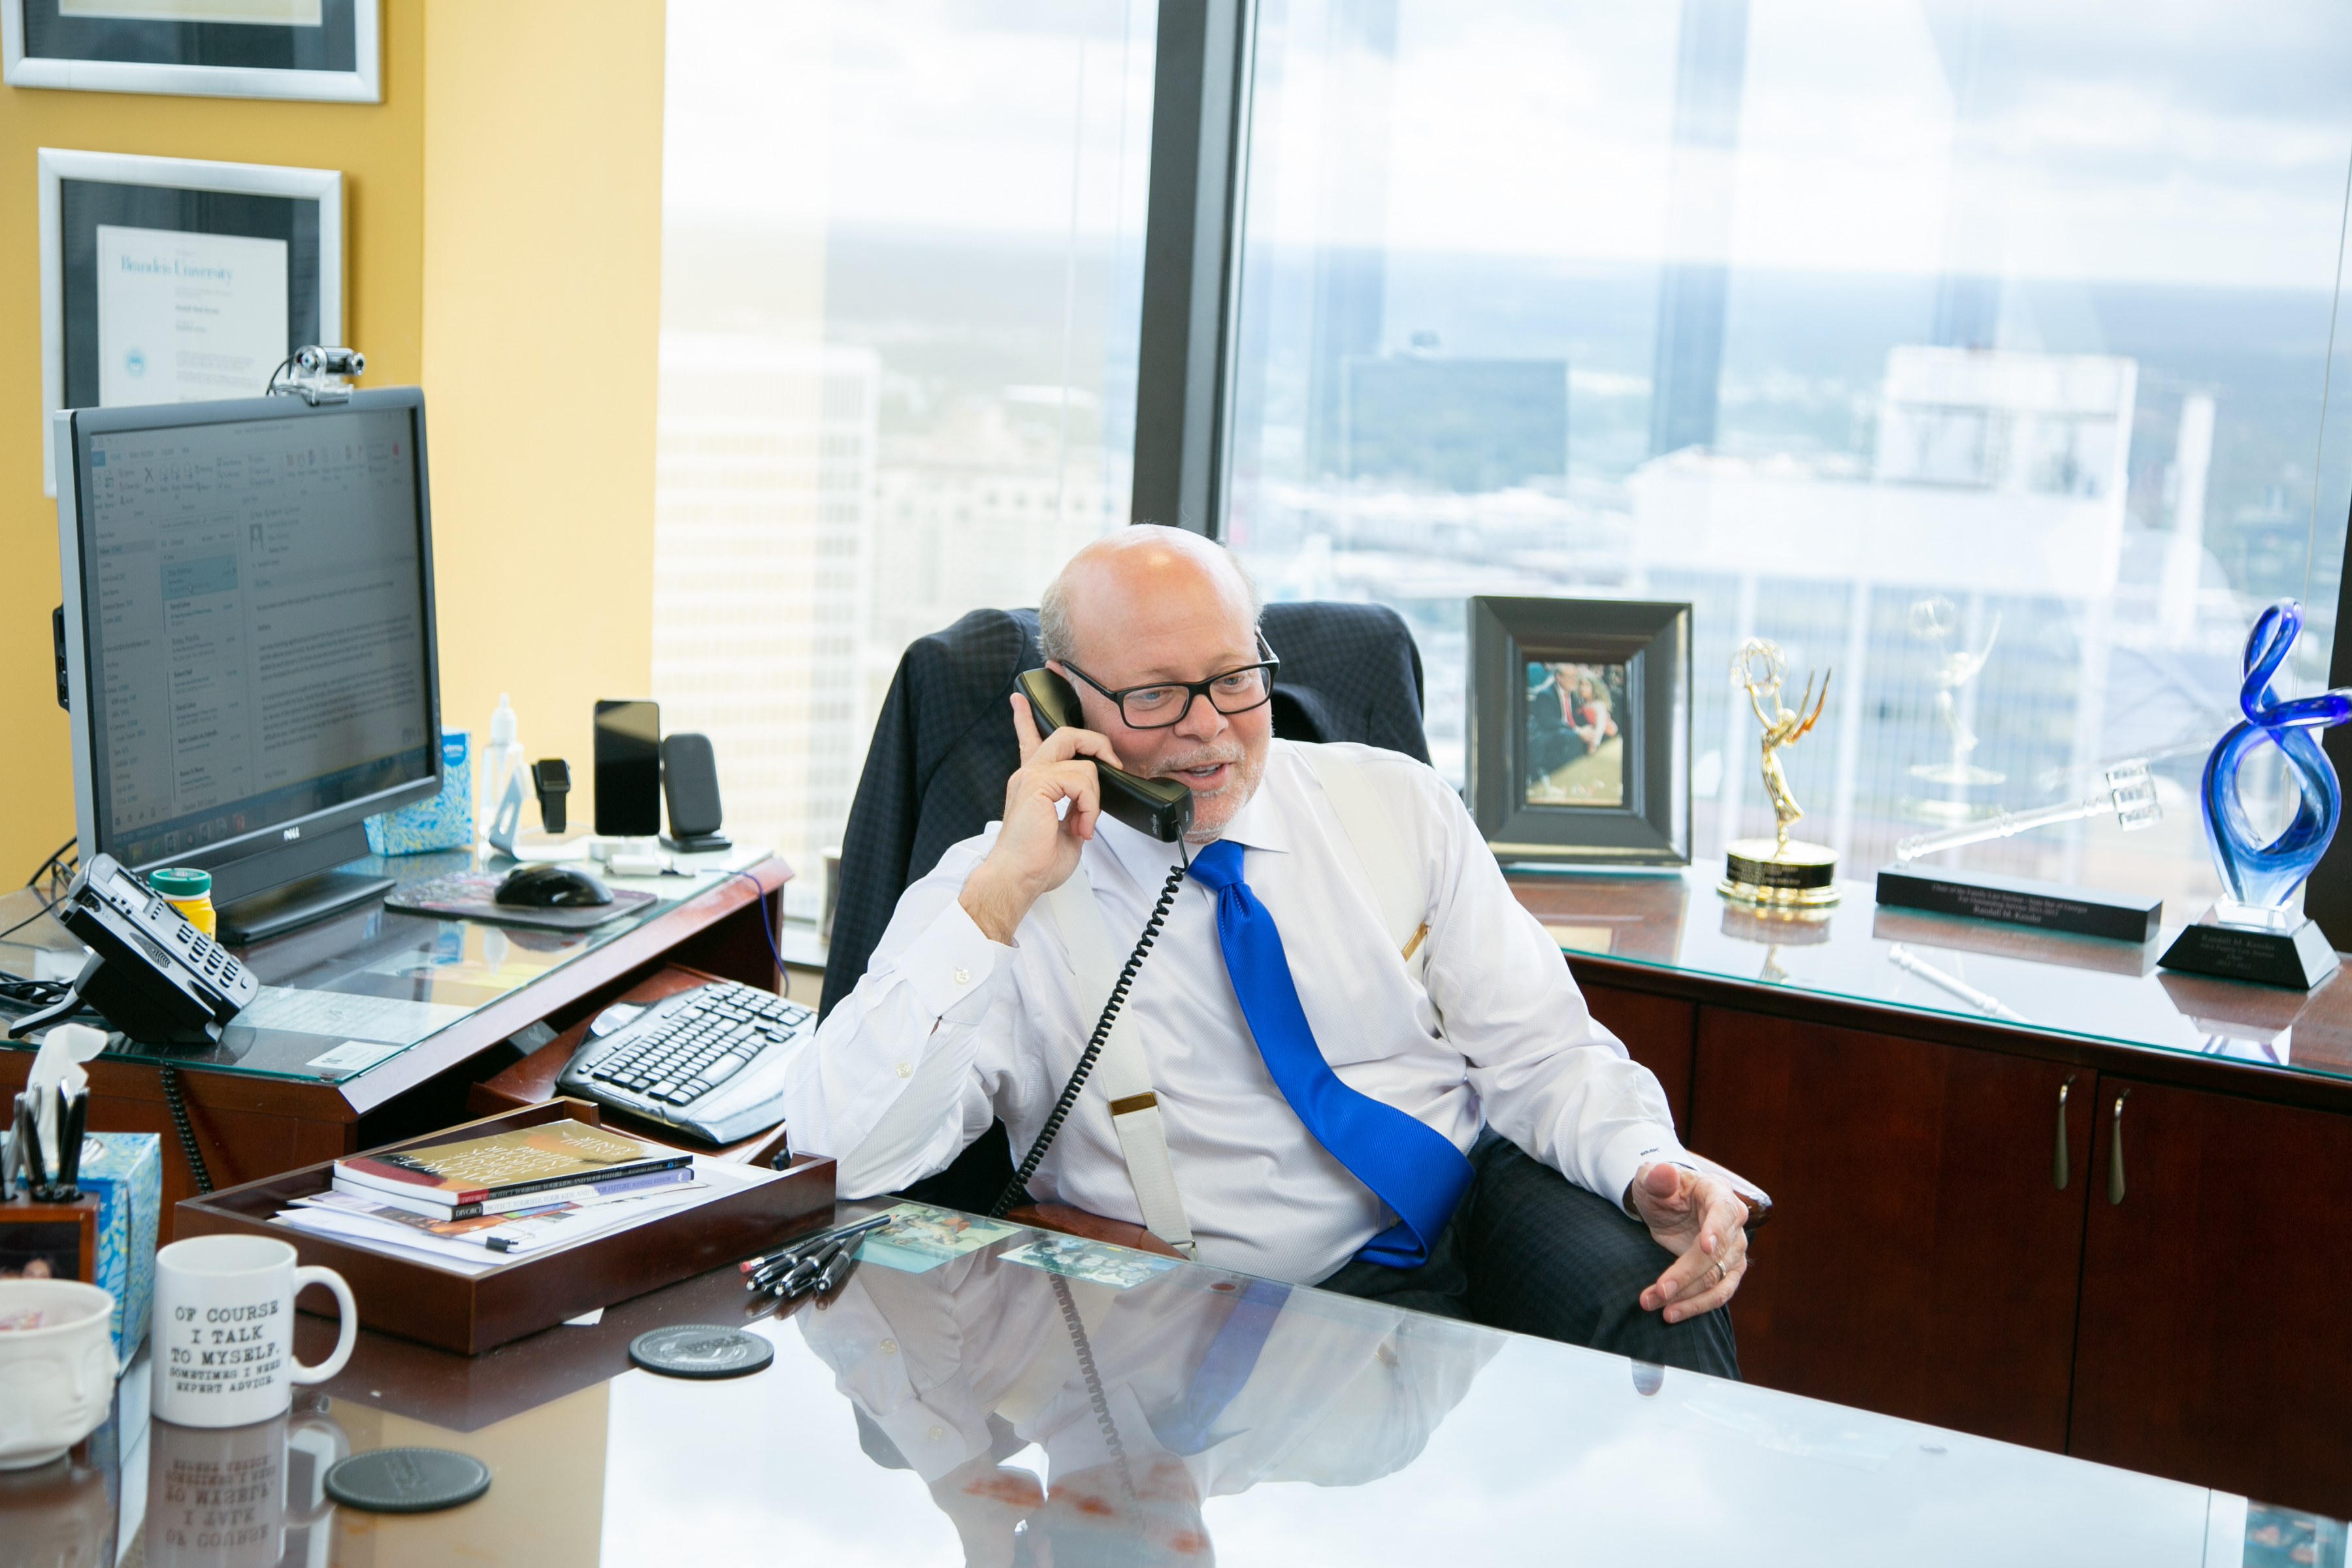 divorce lawyer randall kessler taking a phone call in his office with an emmy in the background